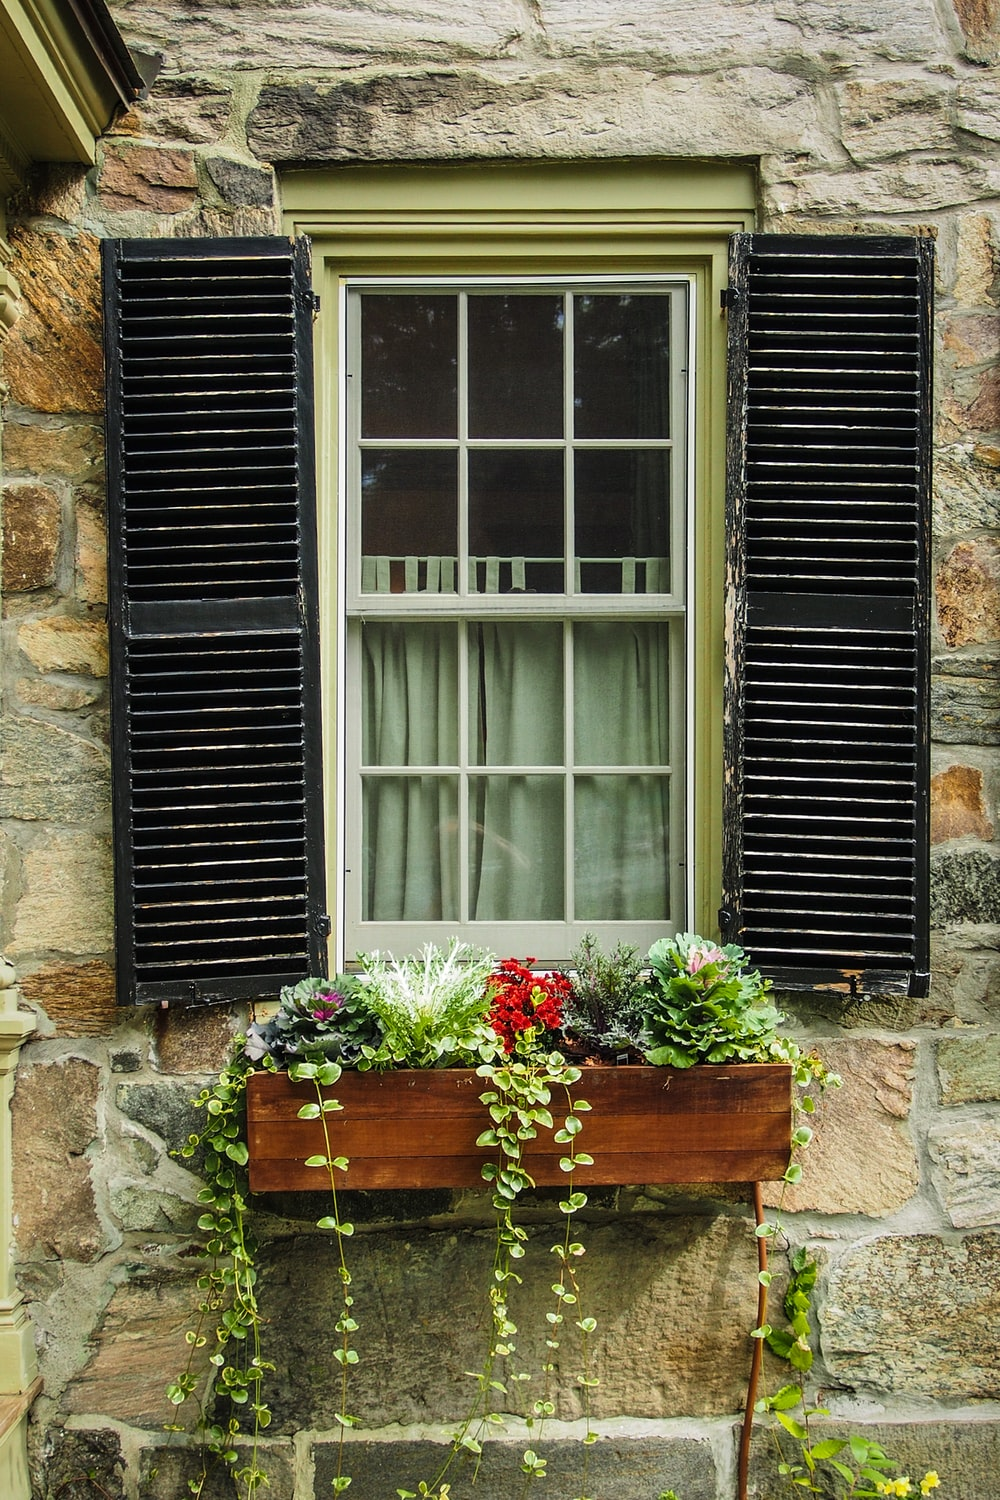 photo of window opened with red and pink petaled flowers decor